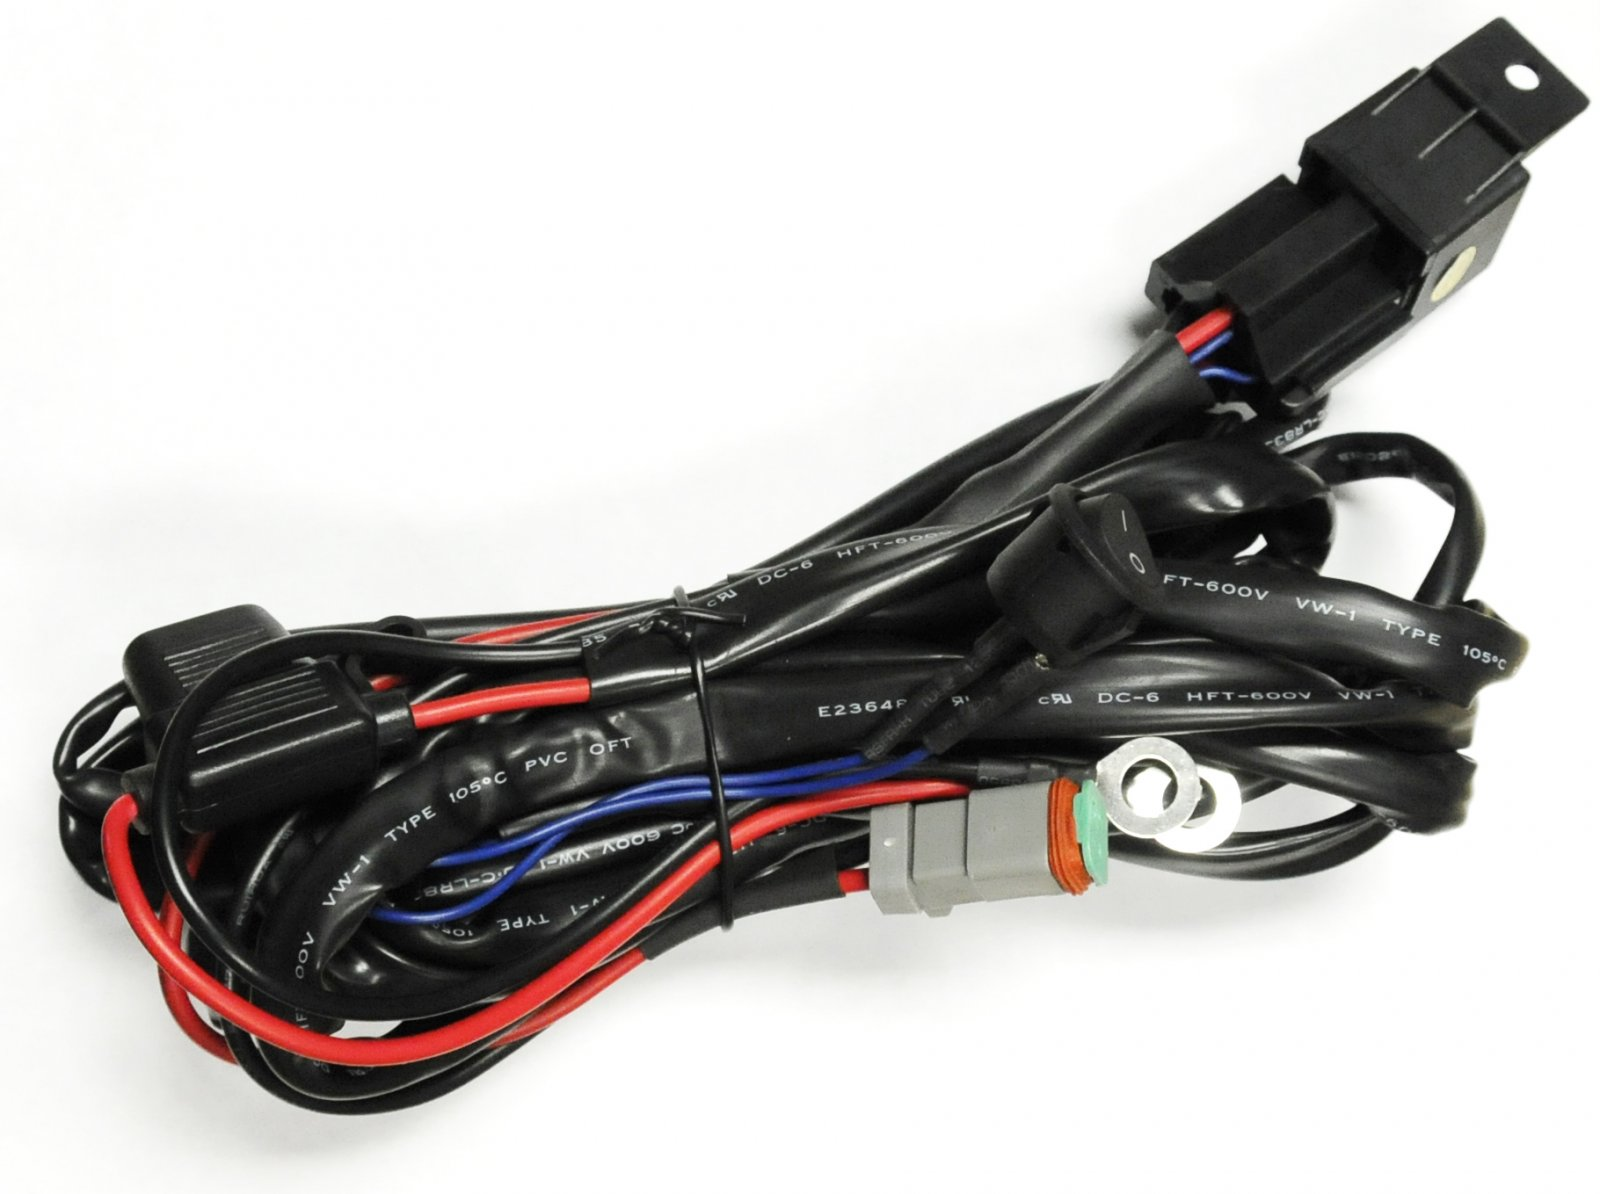 Universal Wiring Harness; includes on/off switch, Relays, Fuse, & Terminal Connectors